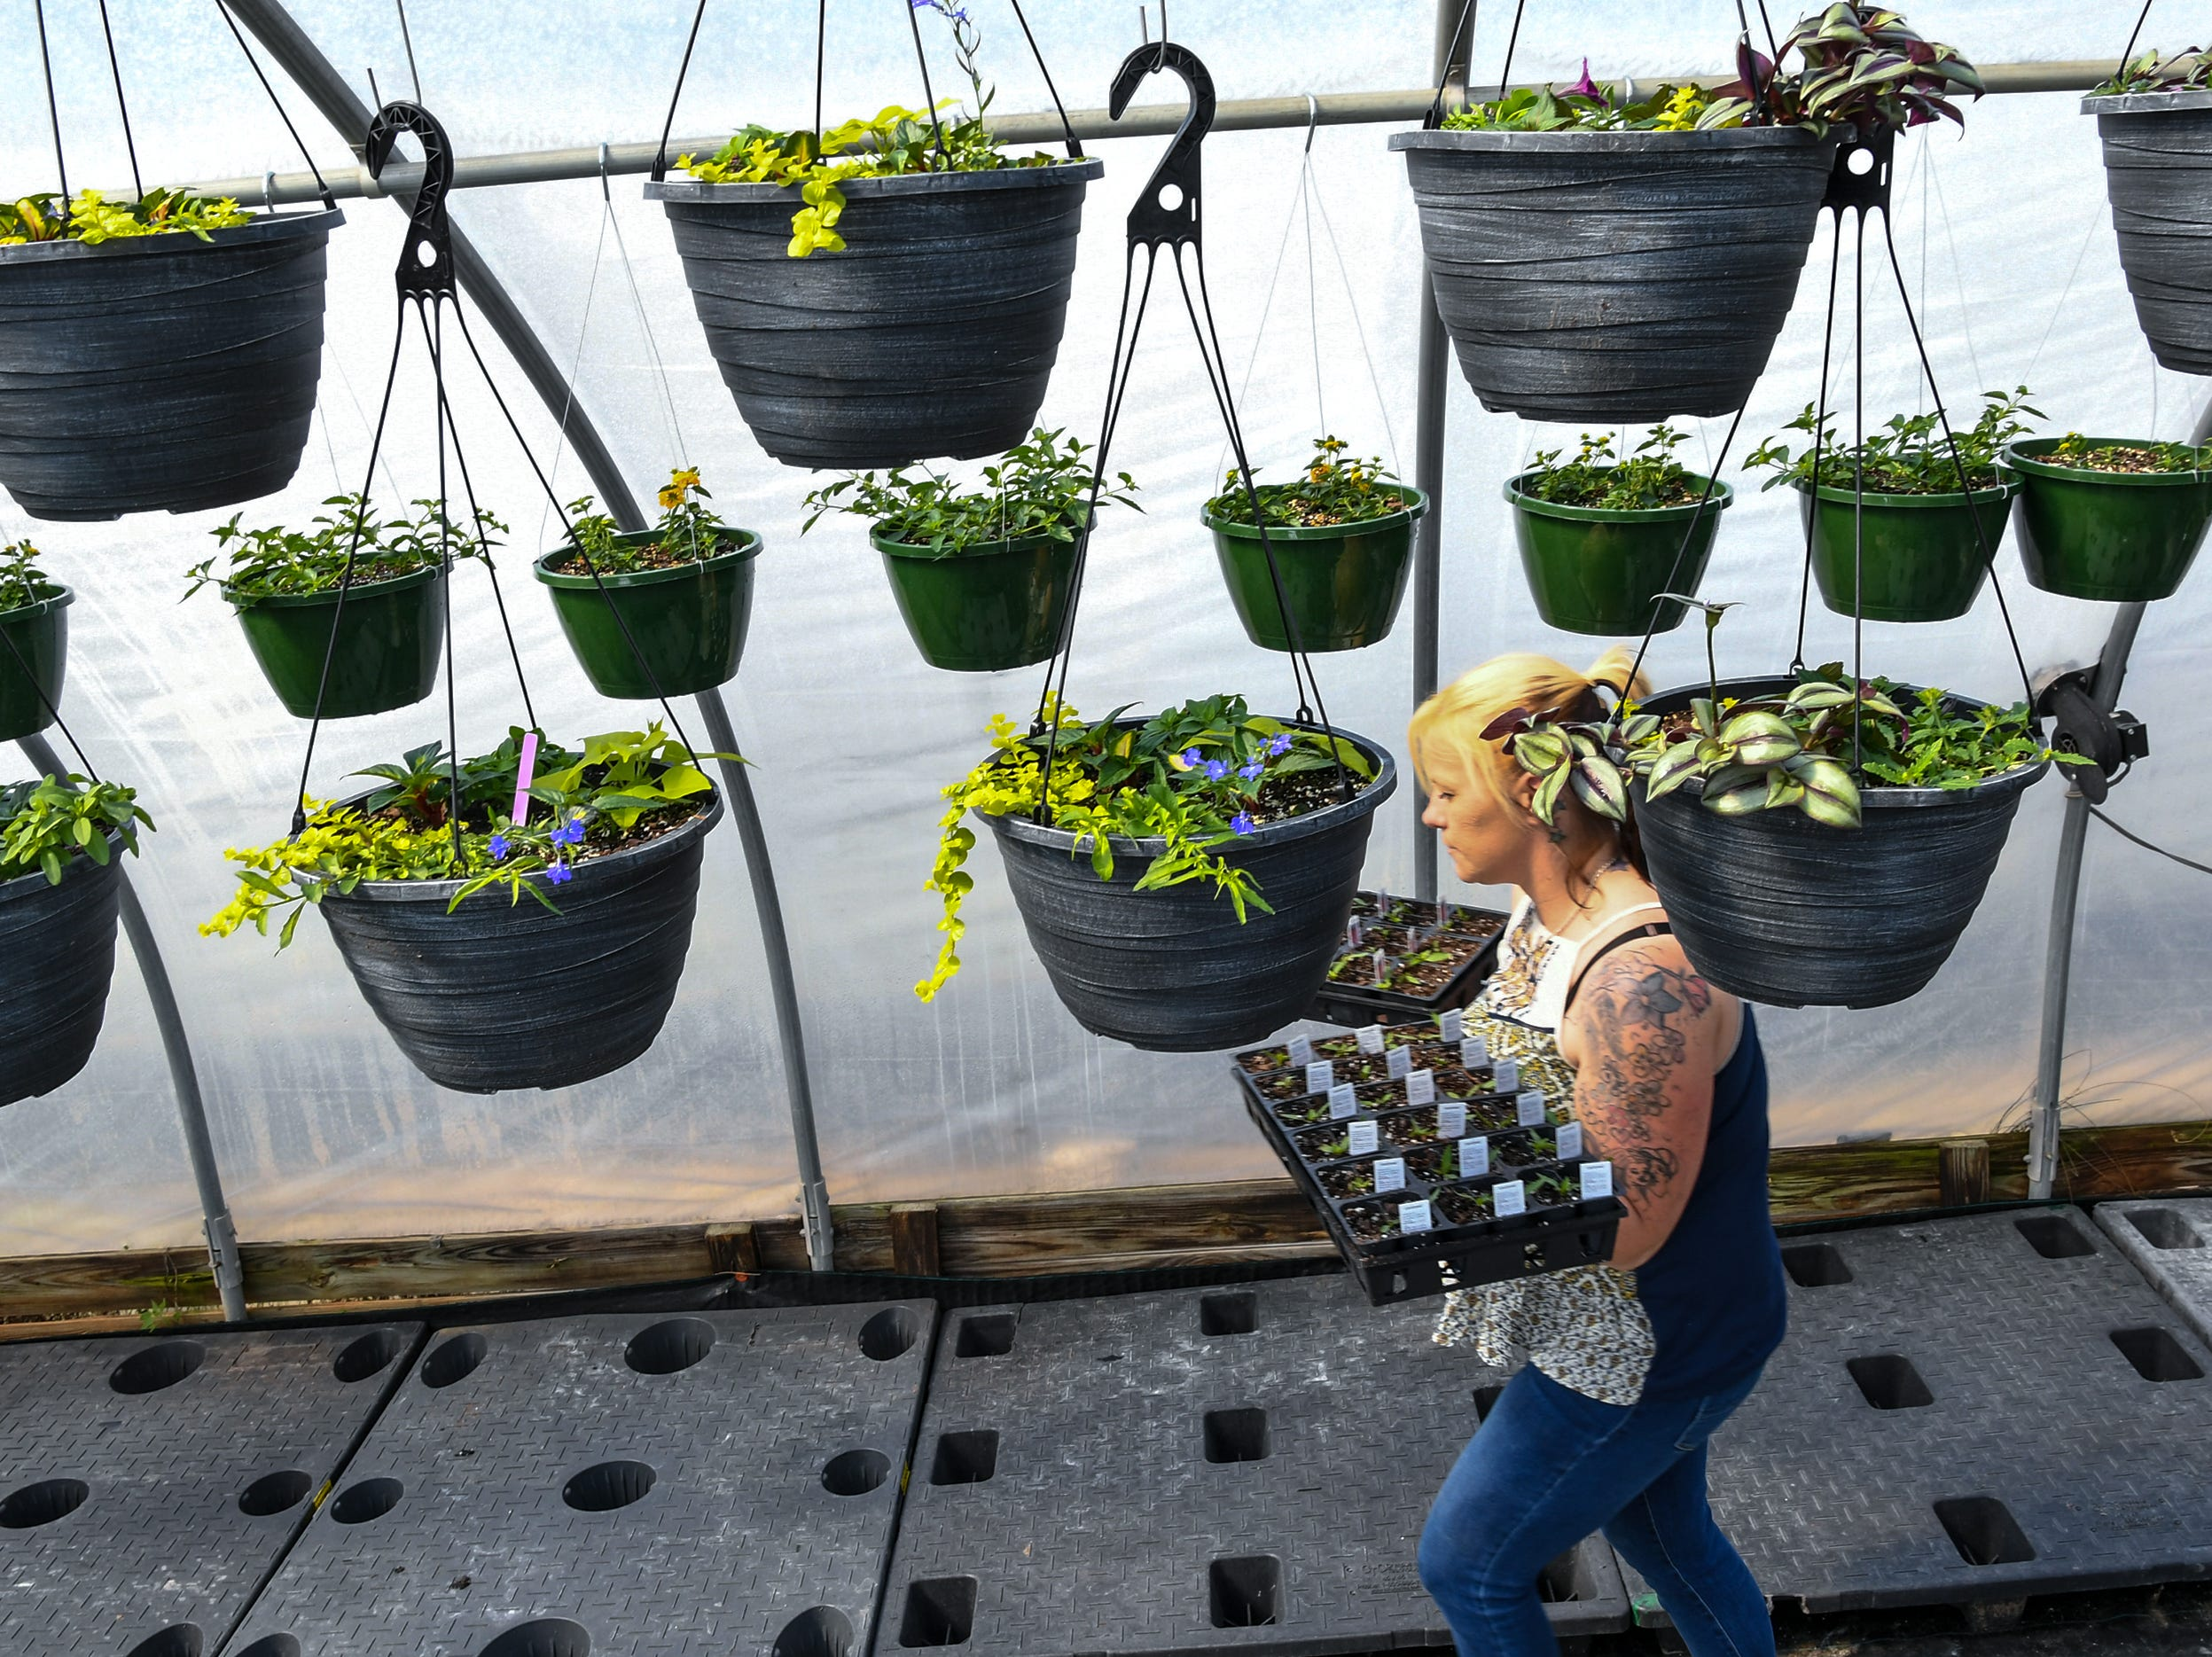 Crystal Pressley carries two flats of new plants to grow at McAlister Greenhouses during the first day of spring in Anderson Wednesday. The plant business in Homeland Park gets busy as the first day of spring is here with warmer weather.